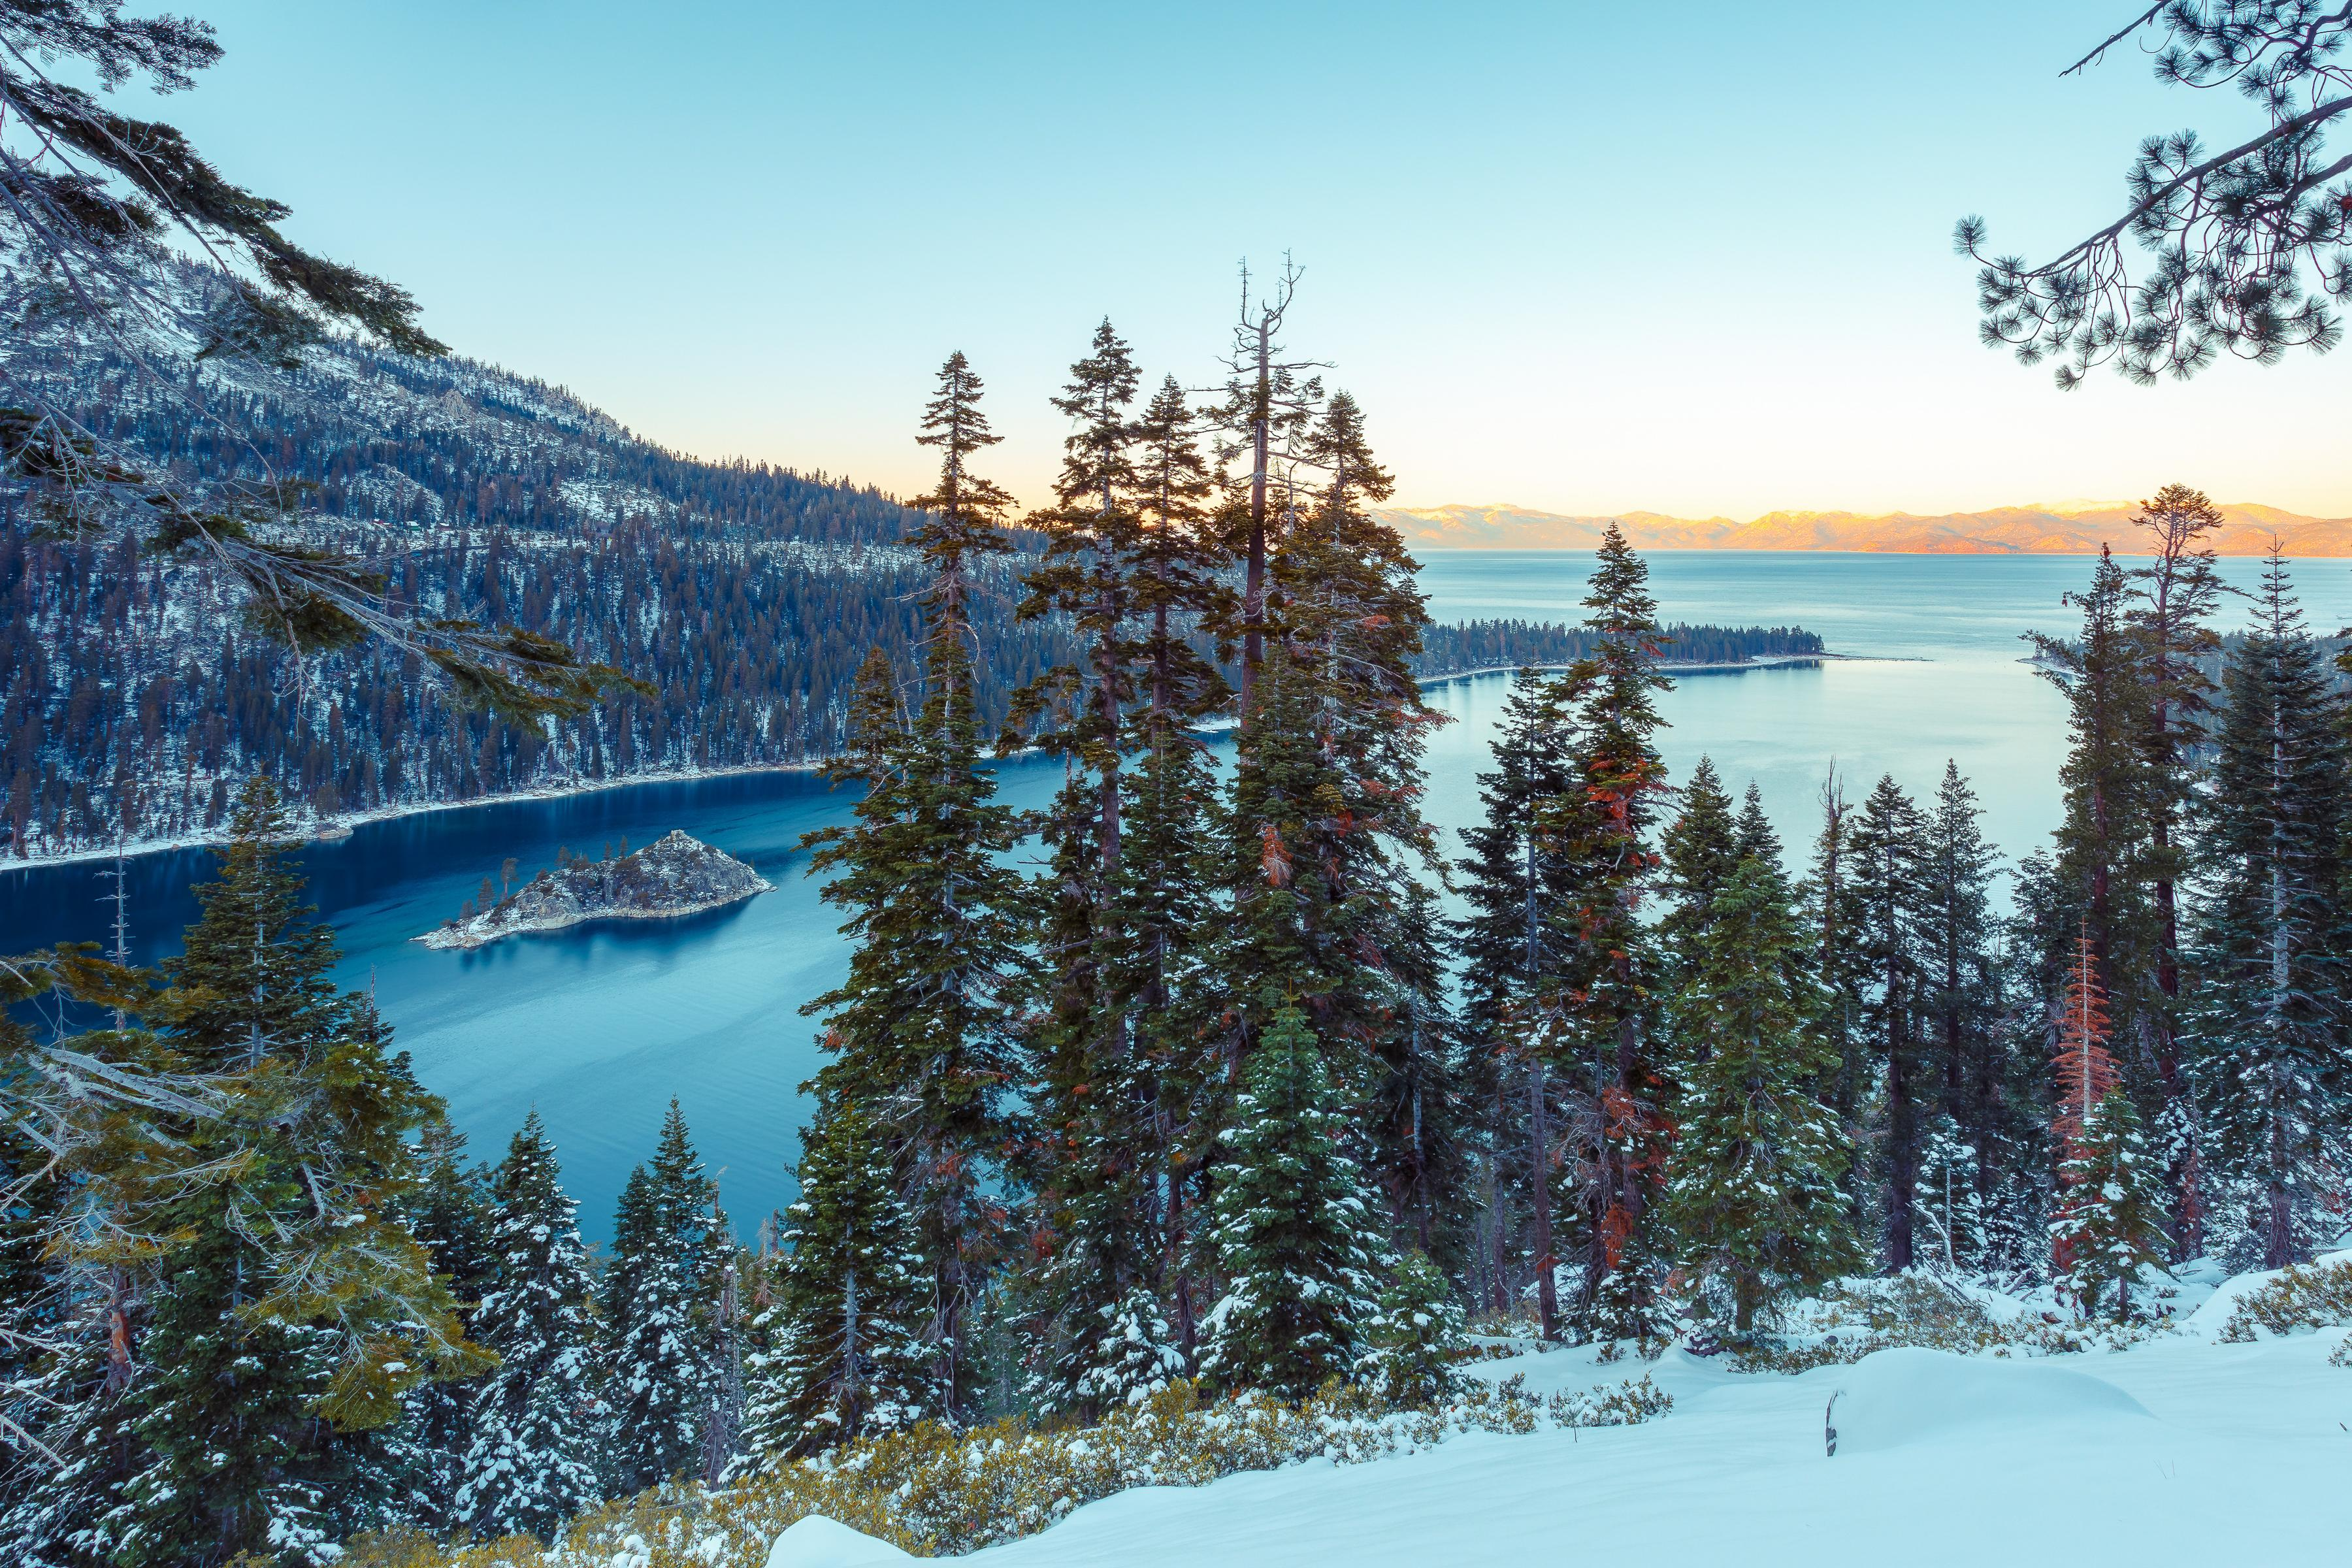 South Lake Tahoe offers exciting mountain adventures in all seasons.